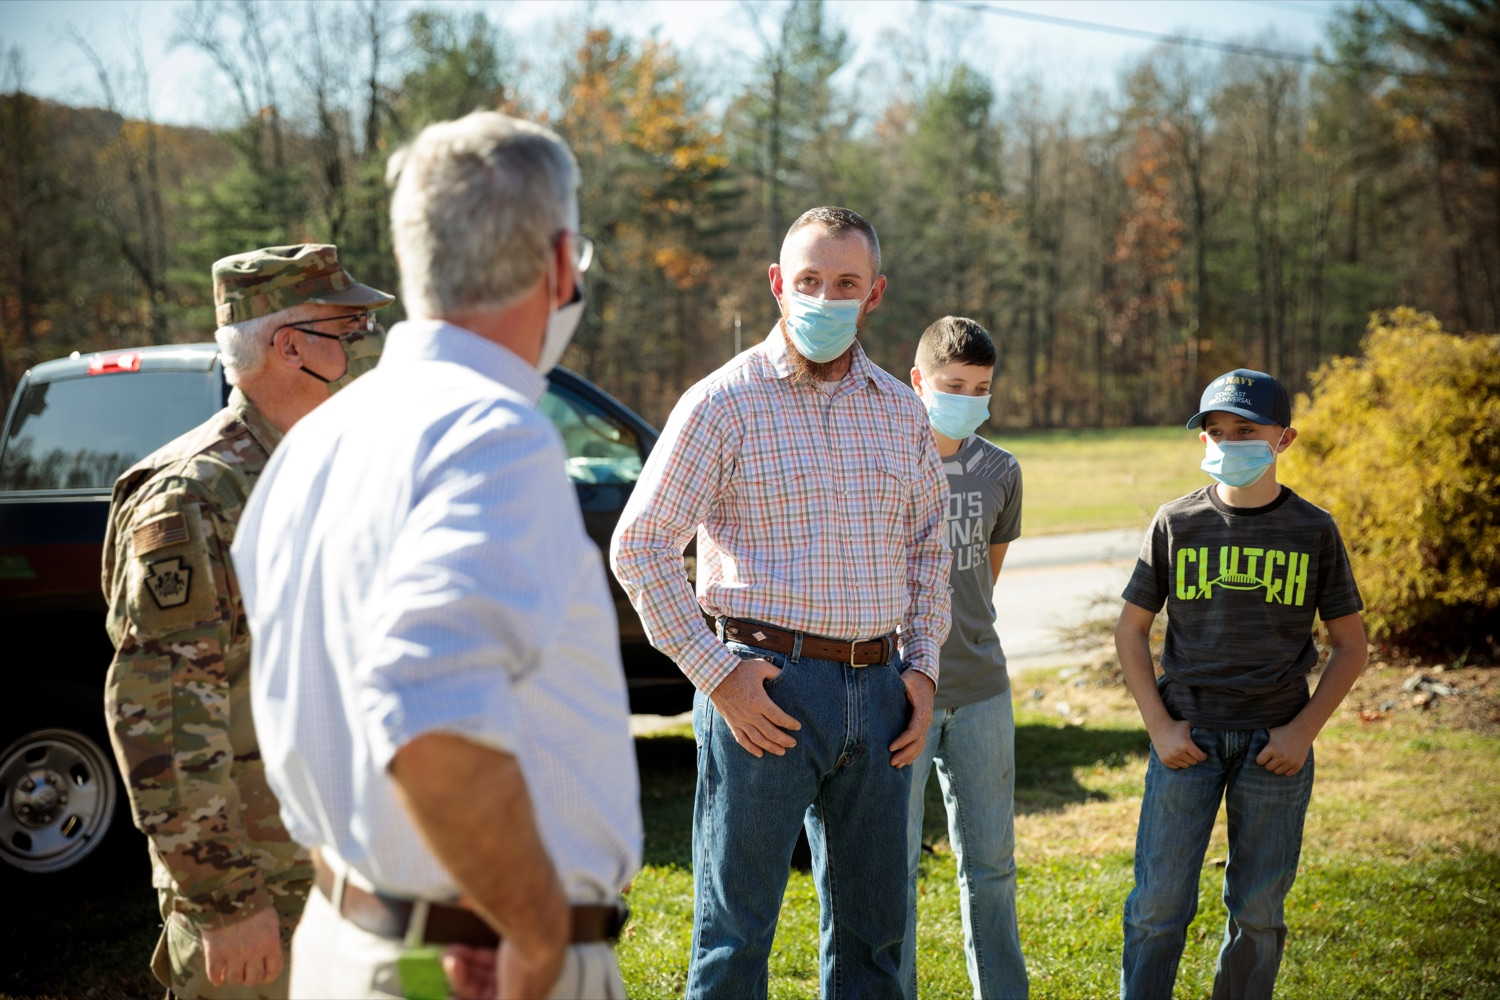 """<a href=""""https://filesource.wostreaming.net/commonwealthofpa/photo/18388_AGRIC_Veteran_Farmers_NK_003.jpg"""" target=""""_blank"""">⇣Download Photo<br></a>U.S. Marine Corps Veteran Daniel Hubbard, center, stands with his children, Lane, 12, center right, and Joshua, 10, right, as they talk with Anthony J. Carrelli, Pennsylvanias adjutant general and head of the Department of Military and Veterans Affairs, center left, and Agriculture Secretary Russell Redding on Hubbard's Family Ranch in Adams County on Friday, November 6, 2020. Hubbard's Family Ranch received grants in September through the states $10 million Fresh Food Financing Initiative COVID-19 Relief Fund to expand access to fresh food in low-income communities during the pandemic."""